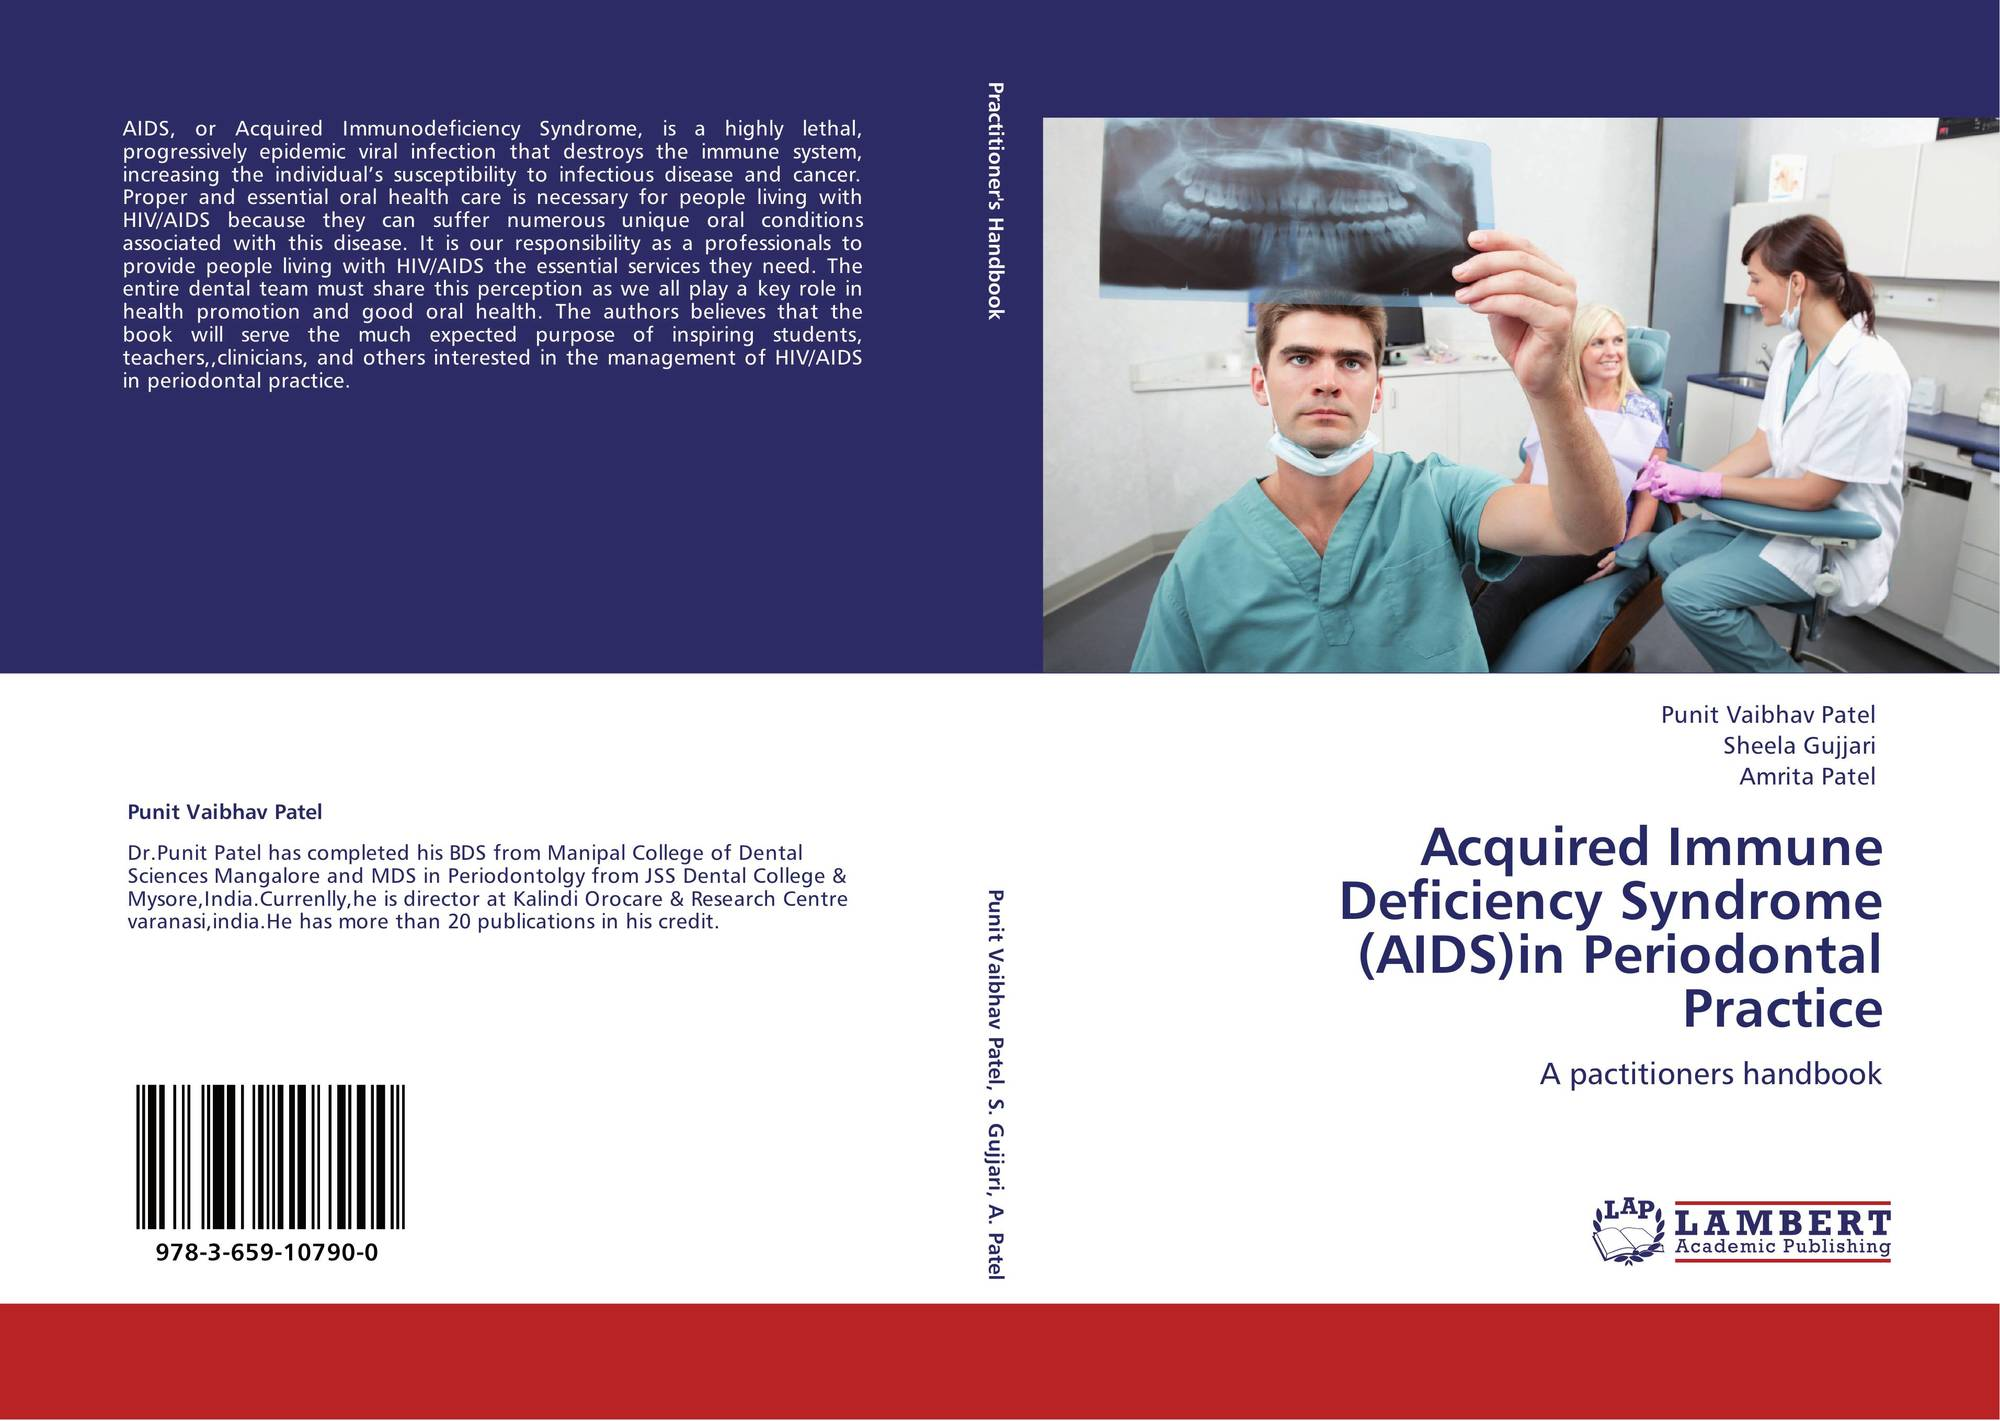 an introduction to acquired immune deficiency syndrome Each employee in the dcyf has a copy of the aids informational handbook this handbook includes case management guidelines based on information from the national centers for disease control, the rhode island department of health and local medical personnel.